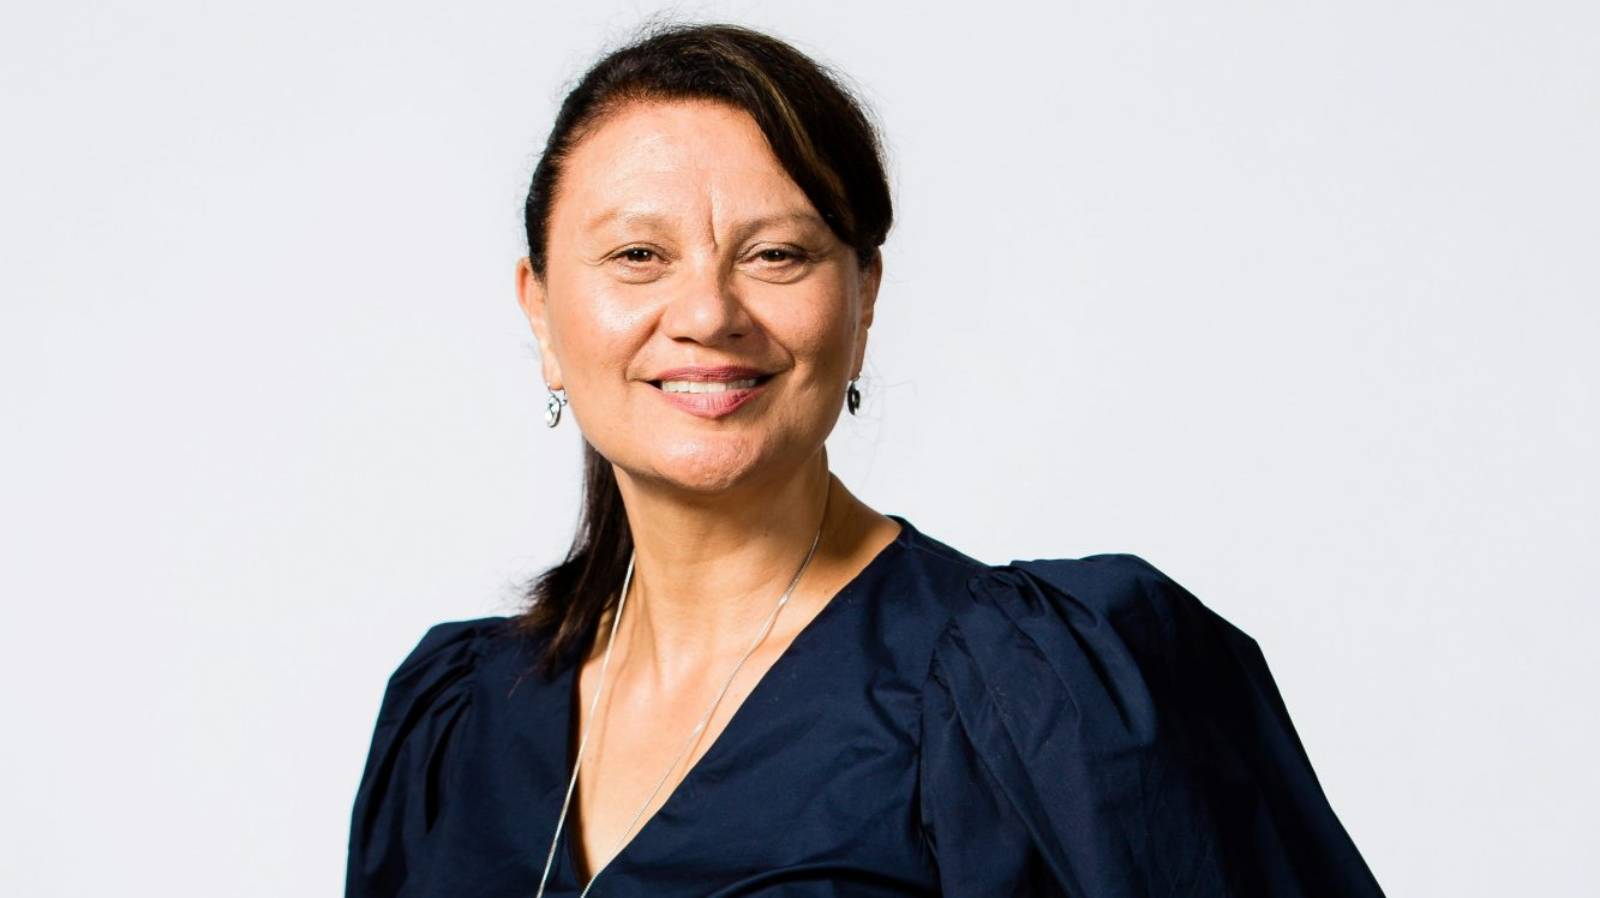 City to benefit from strong Māori voice